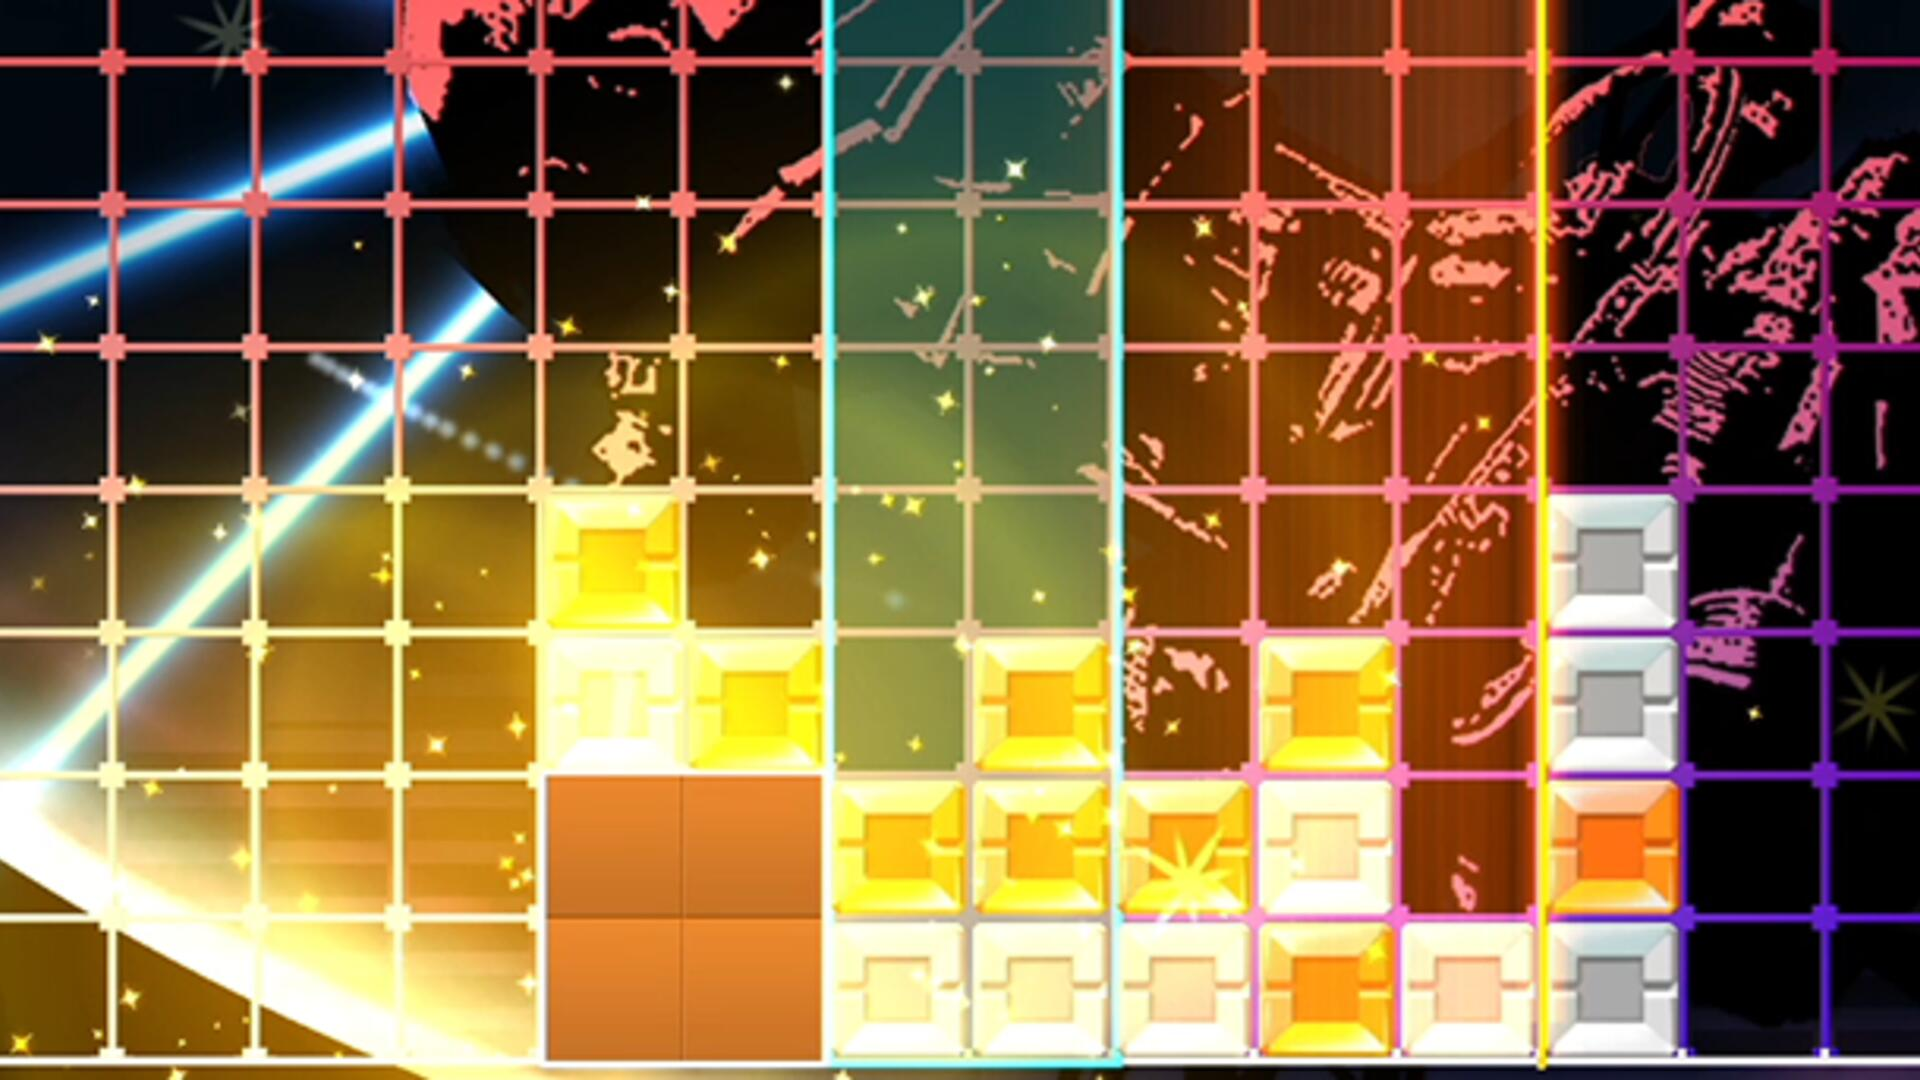 Lumines Remastered Owes Its Existence to Nintendo Switch